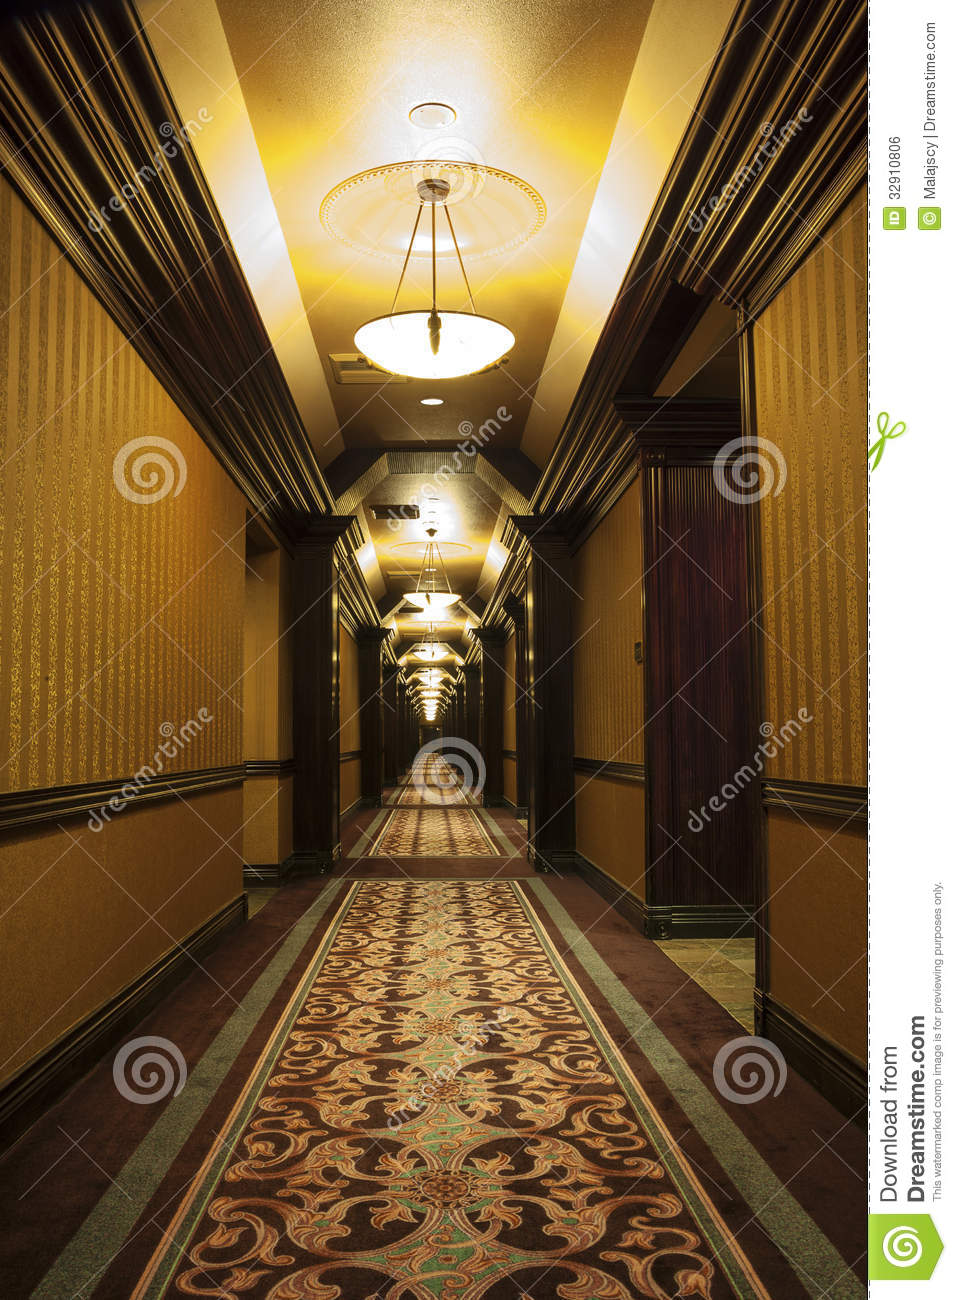 long art deco corridor royalty free stock image image 32910806